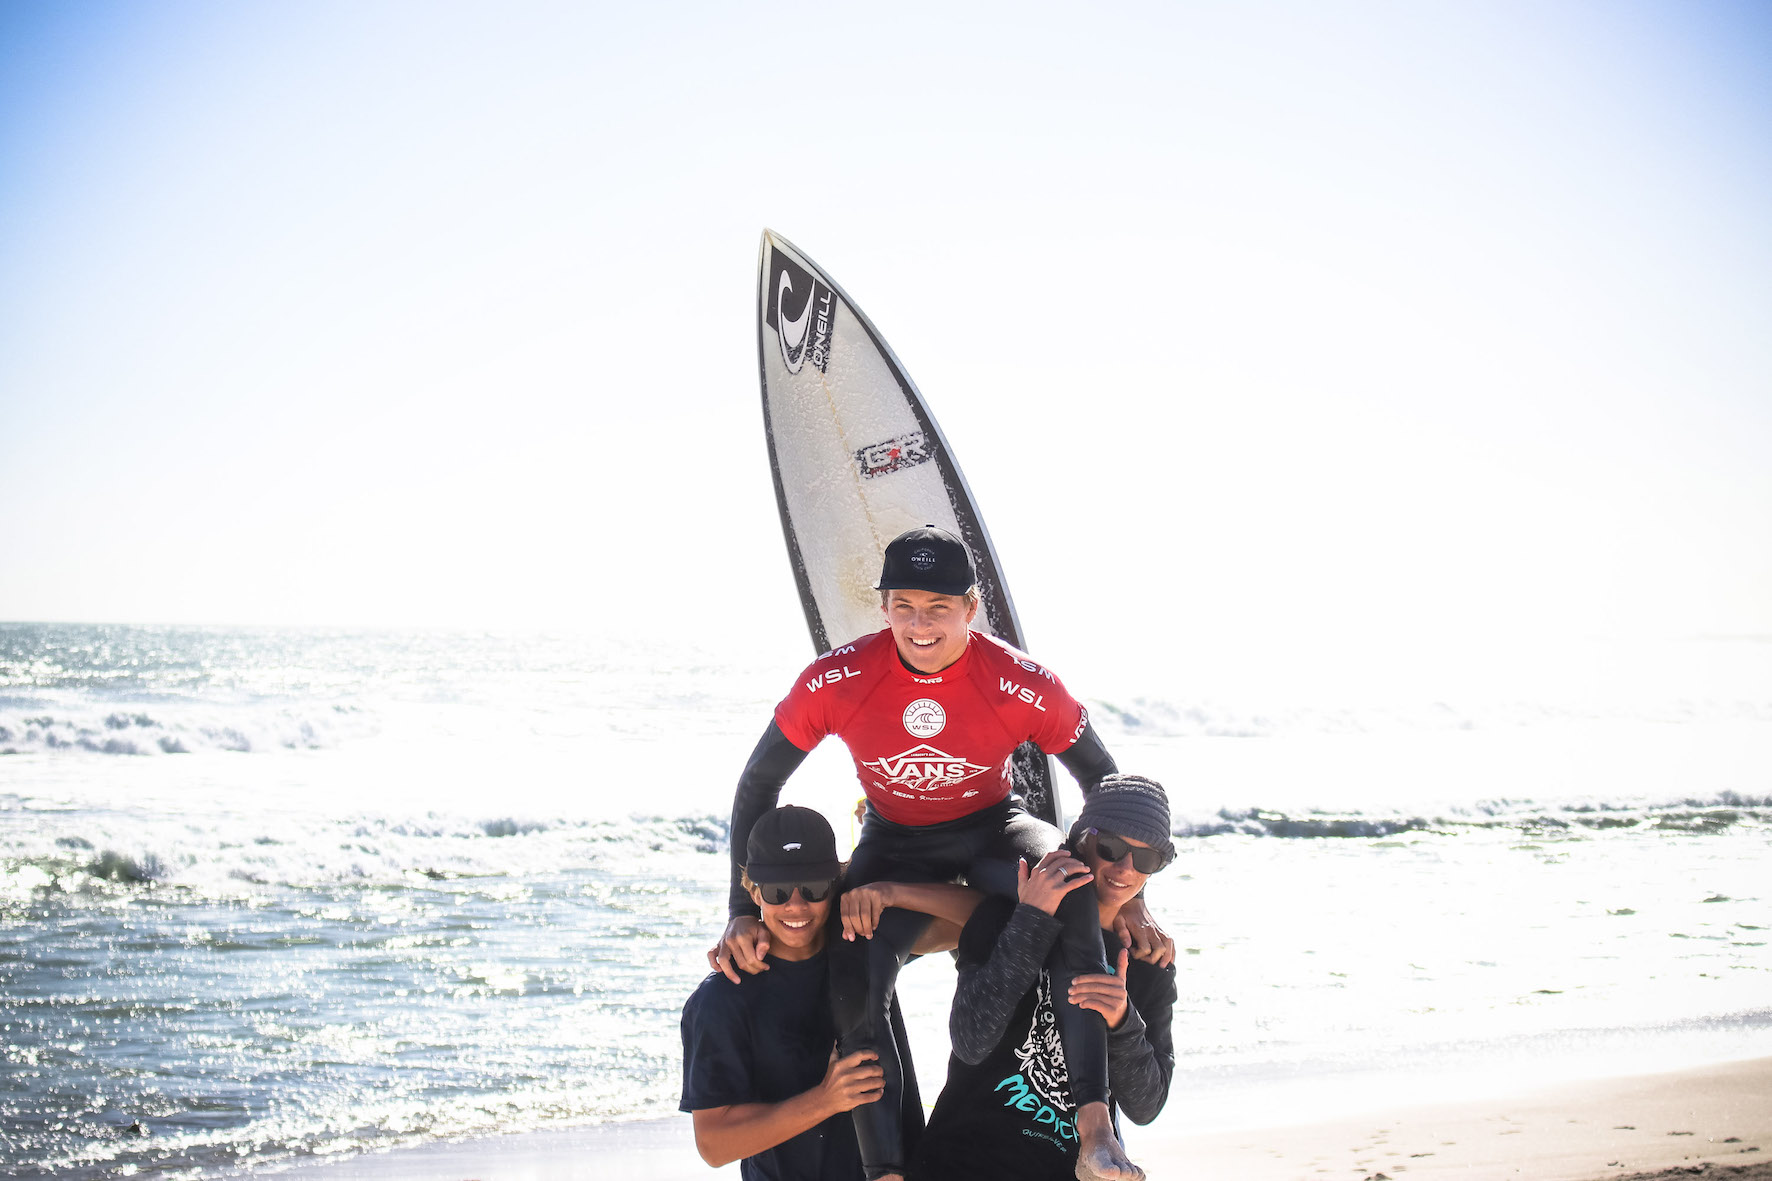 Eli Beukes claims victory at the 2018 Vans Surf Pro